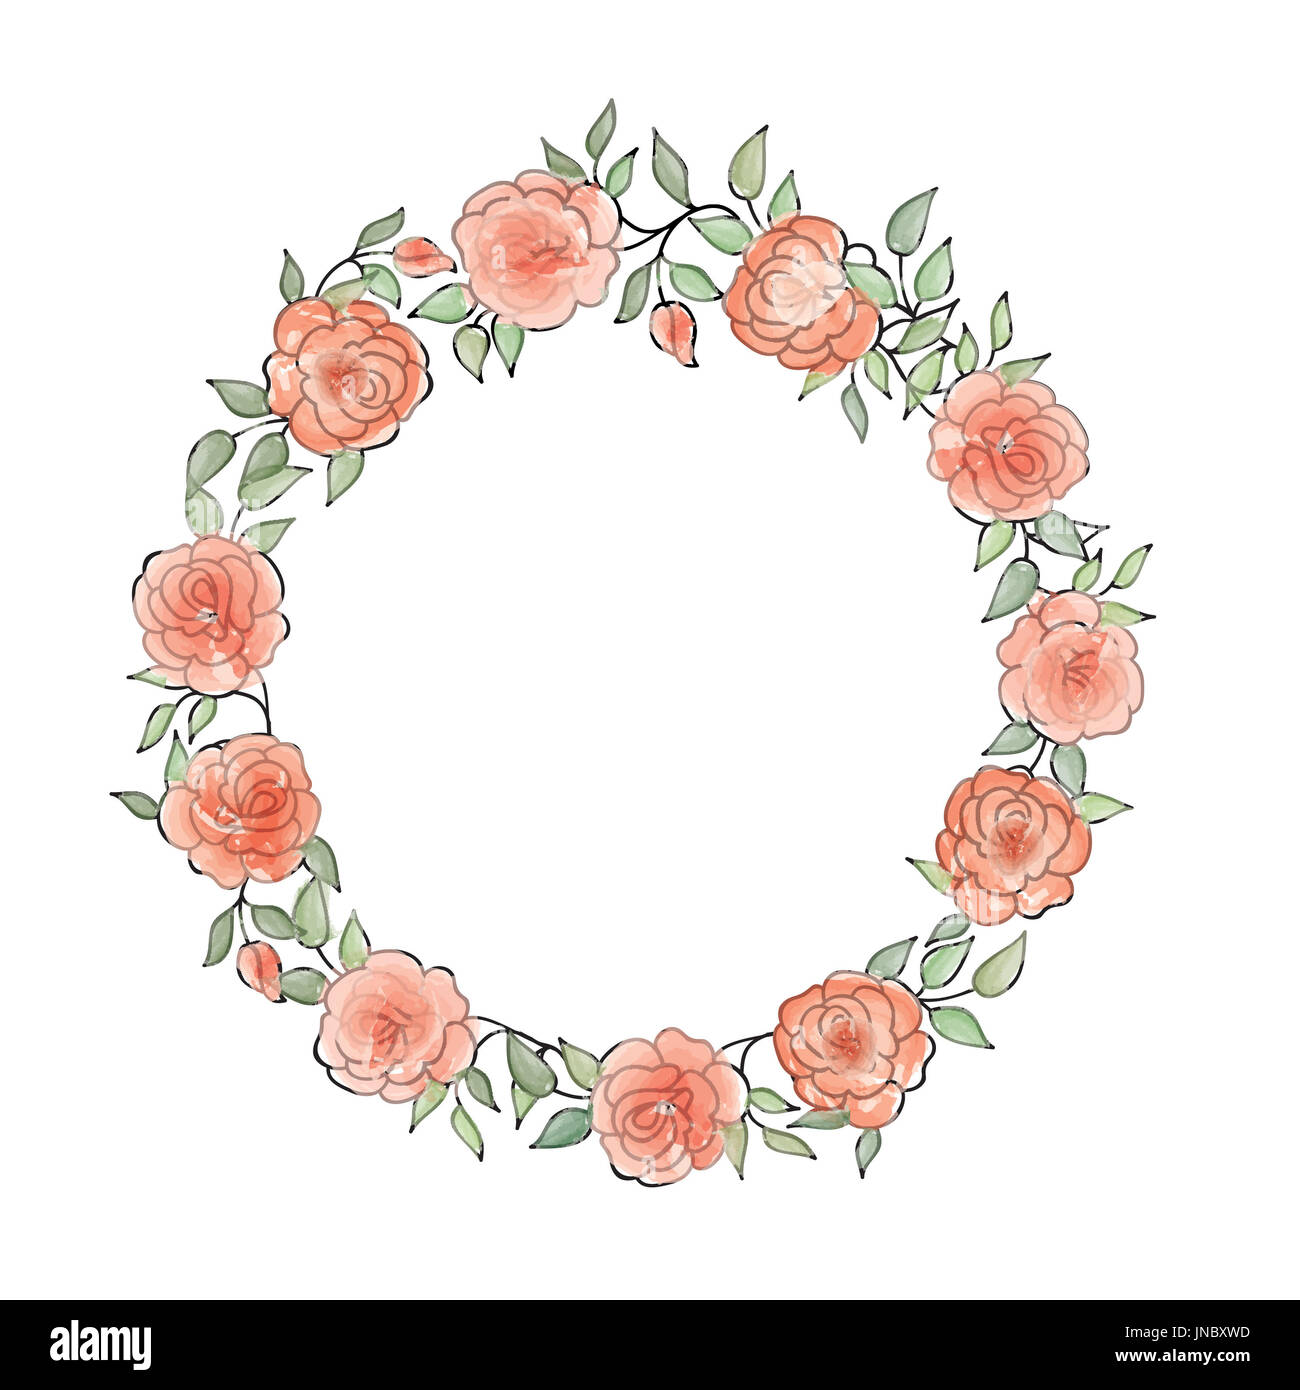 Watercolor flower vector round watercolor stock photos watercolor floral frame summer flower bouquet greeting card background stock image izmirmasajfo